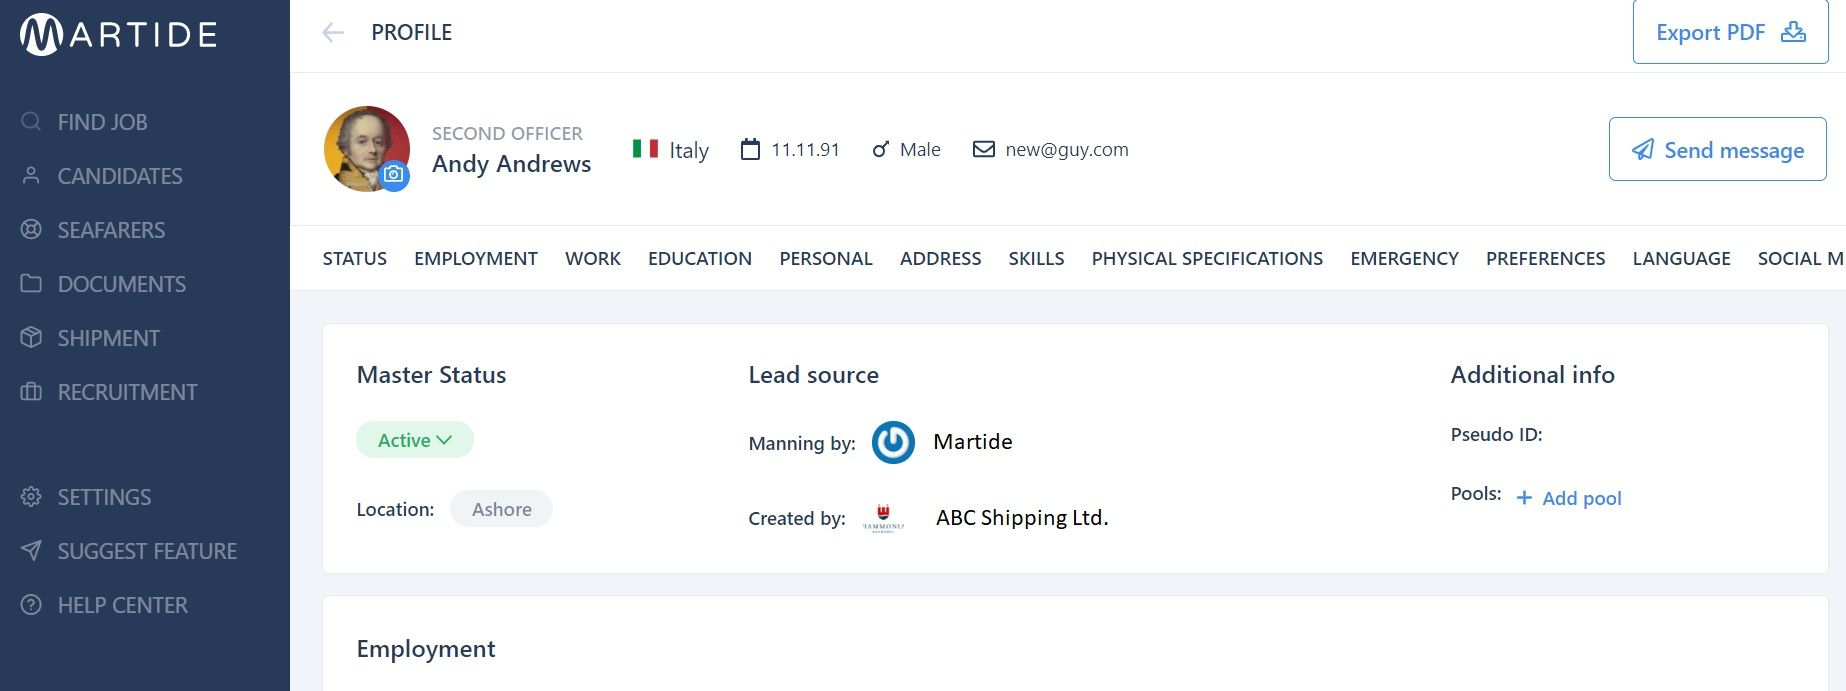 Screenshot of Martide website showing the seafarer profile page